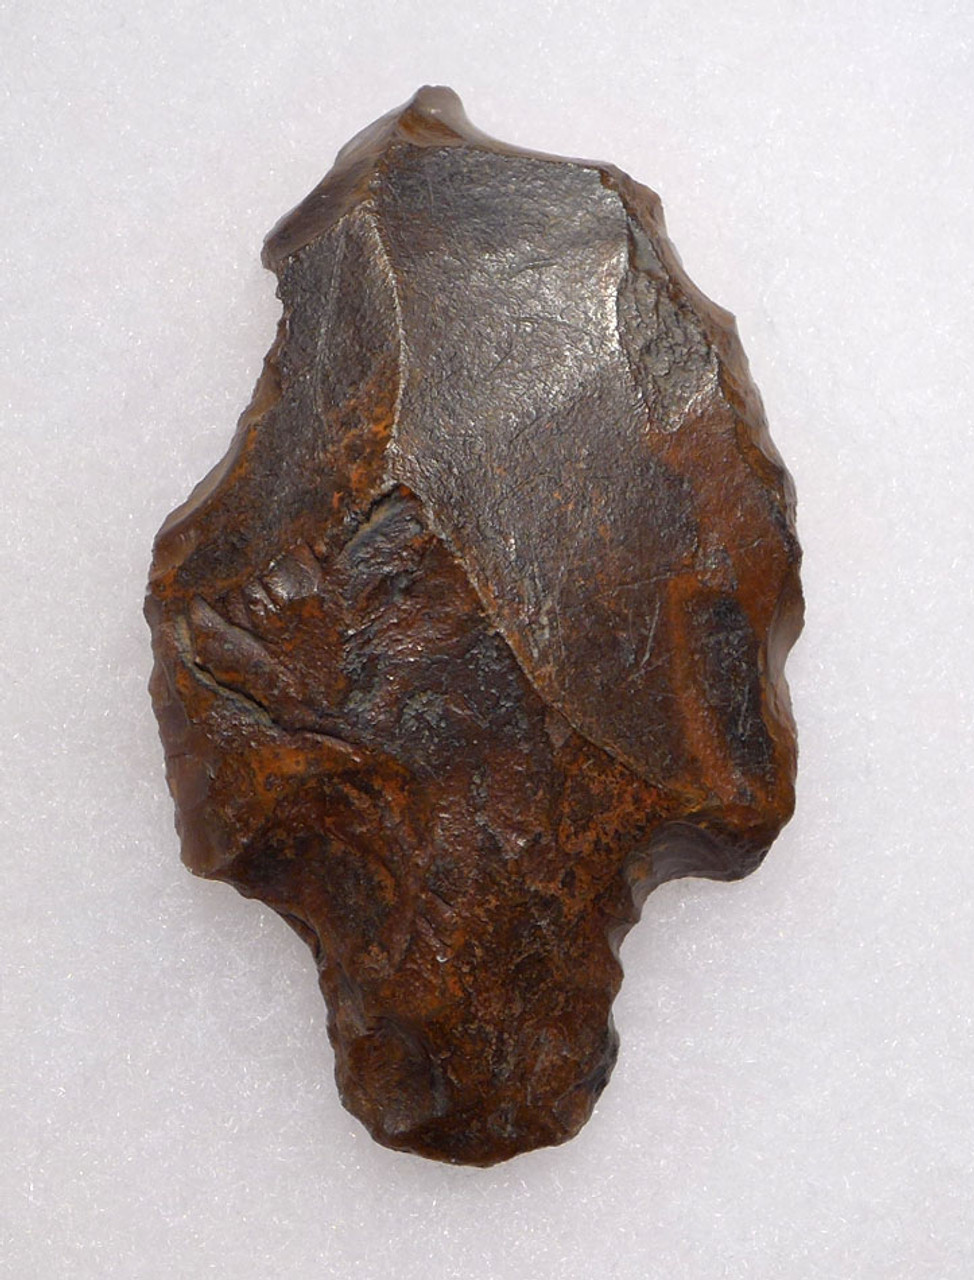 VERY LARGE OLDEST KNOWN TANGED ARROWHEAD - MIDDLE PALEOLITHIC ATERIAN POINT *AT100